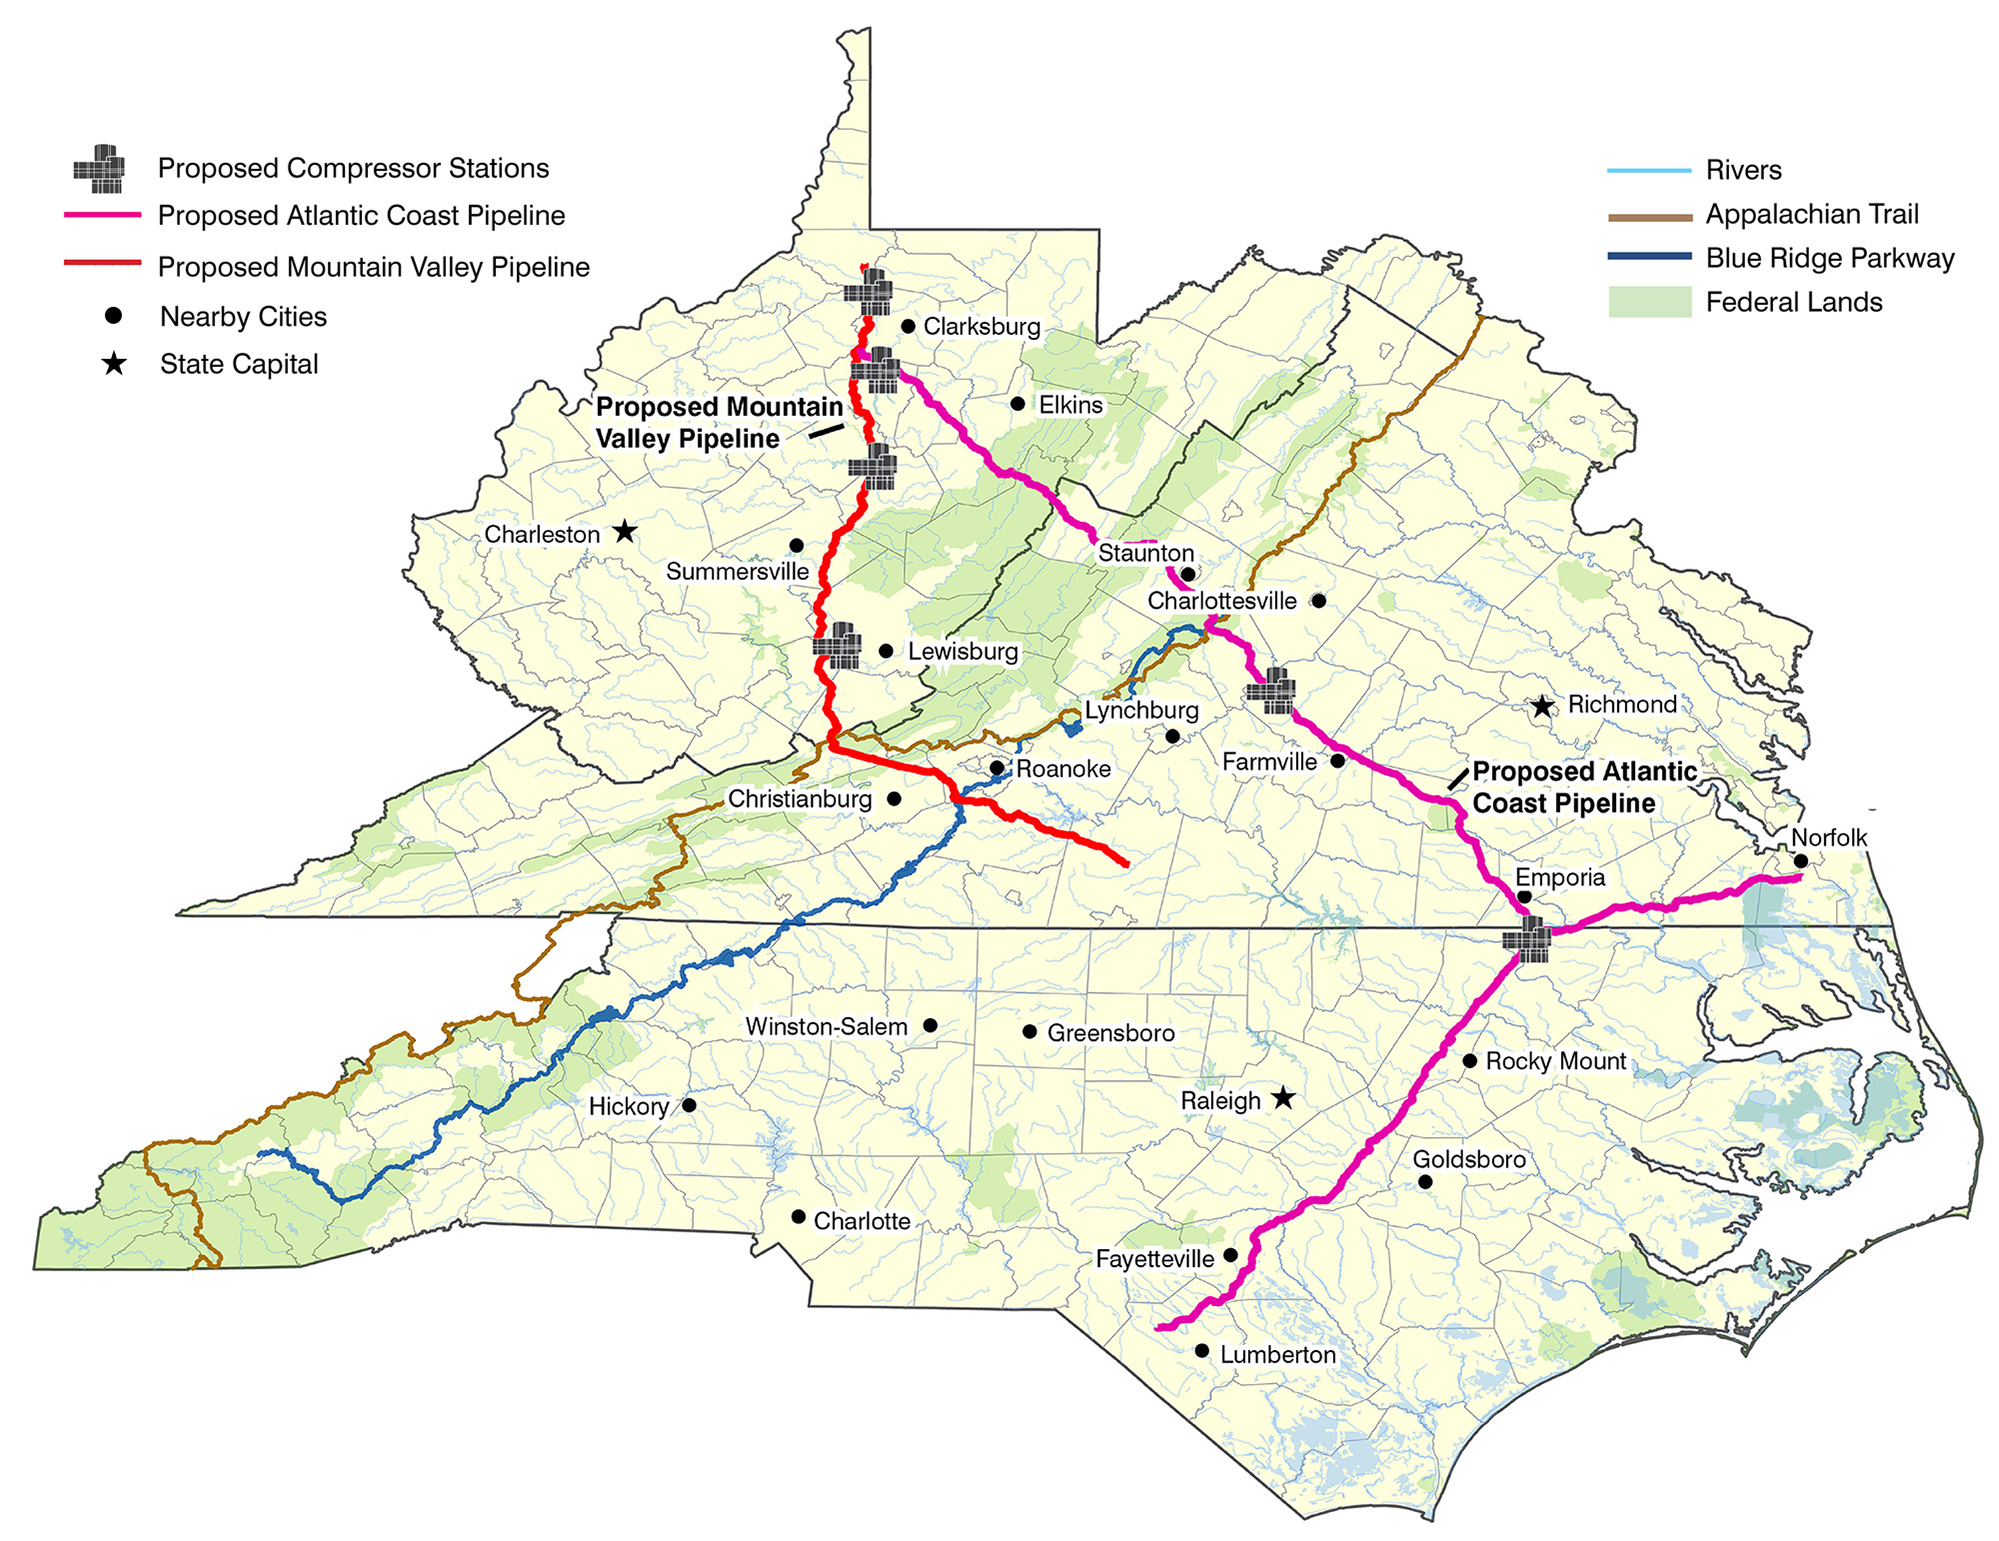 a map showing the routes of the proposed atlantic coast and mountain valley pipelines including